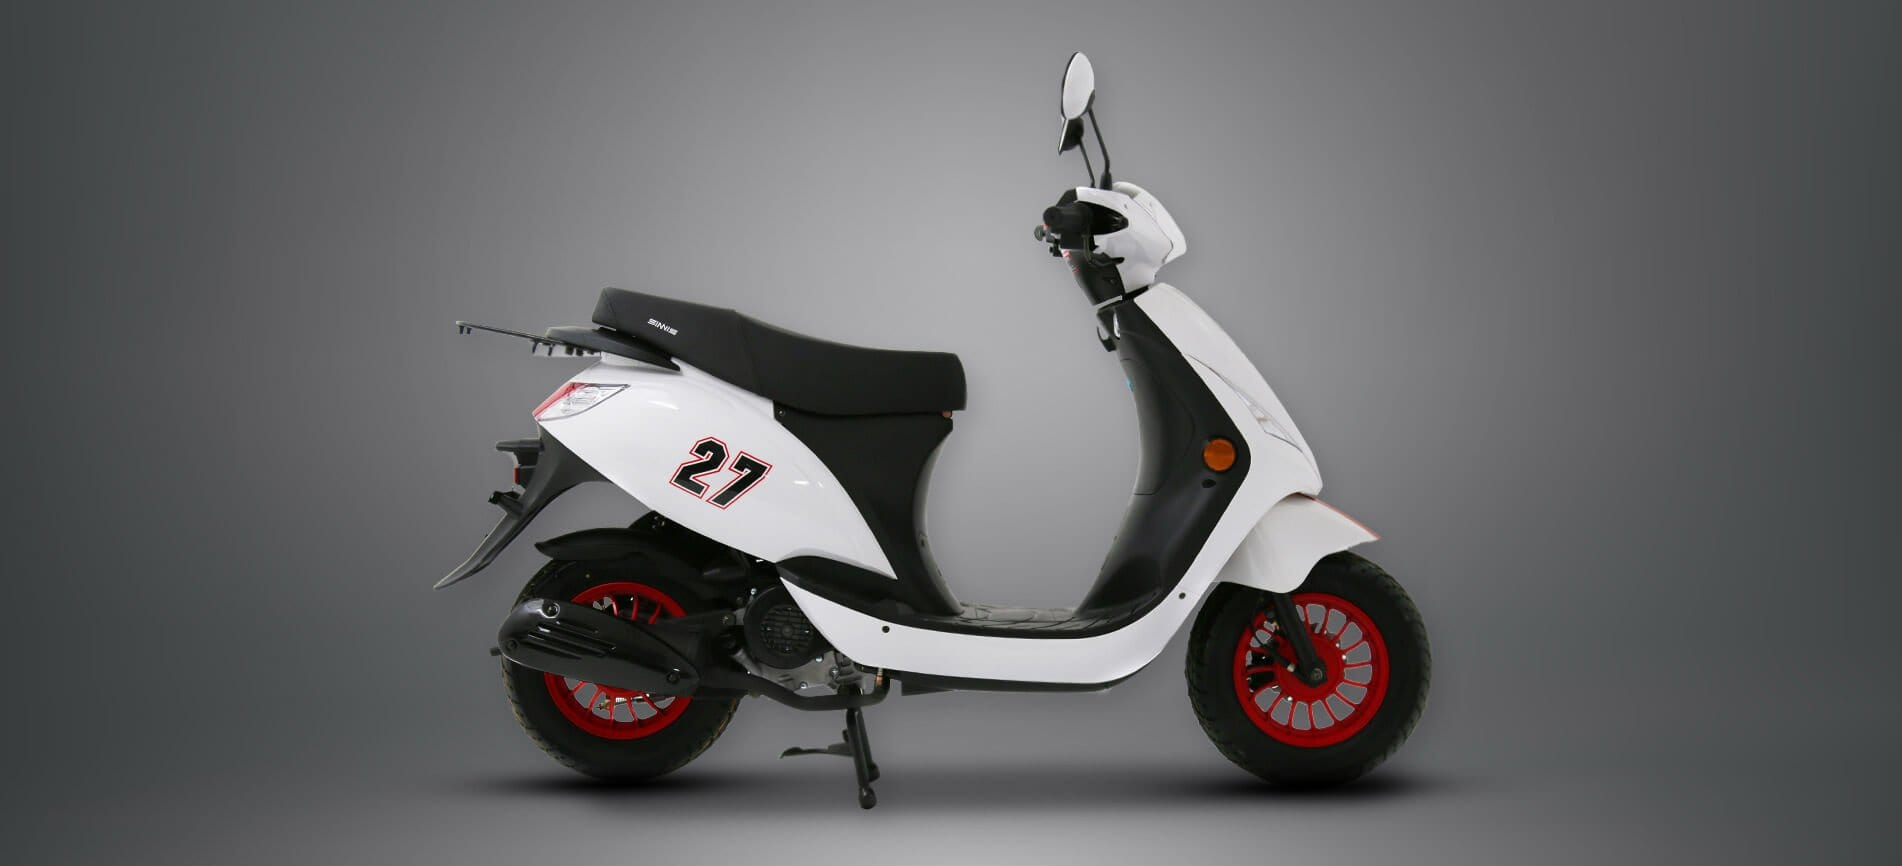 Sinnis street 50cc white header